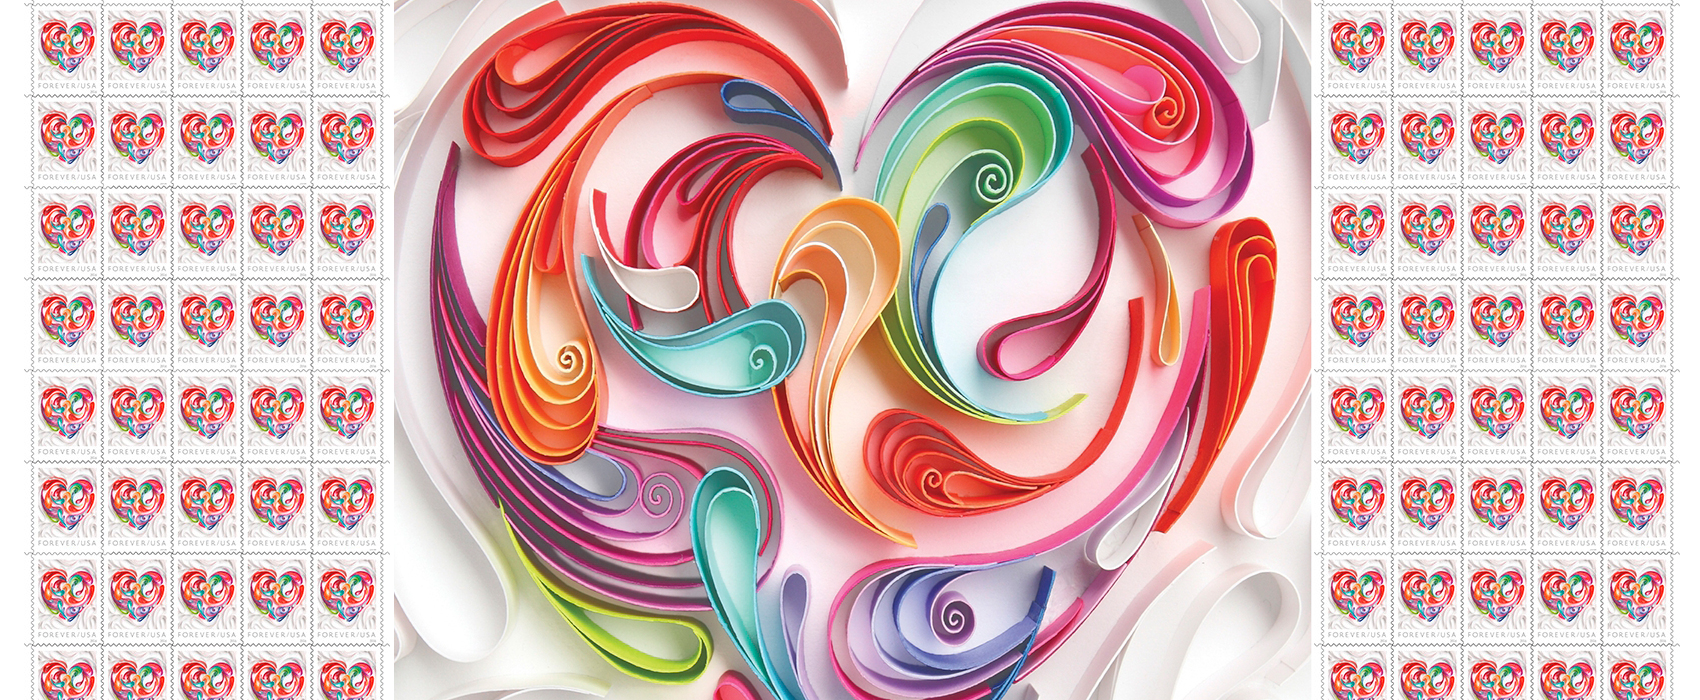 New 2016 Love Stamp Showcasing Stunning 3 D Artwork Captures Intricate Art Of Quilling